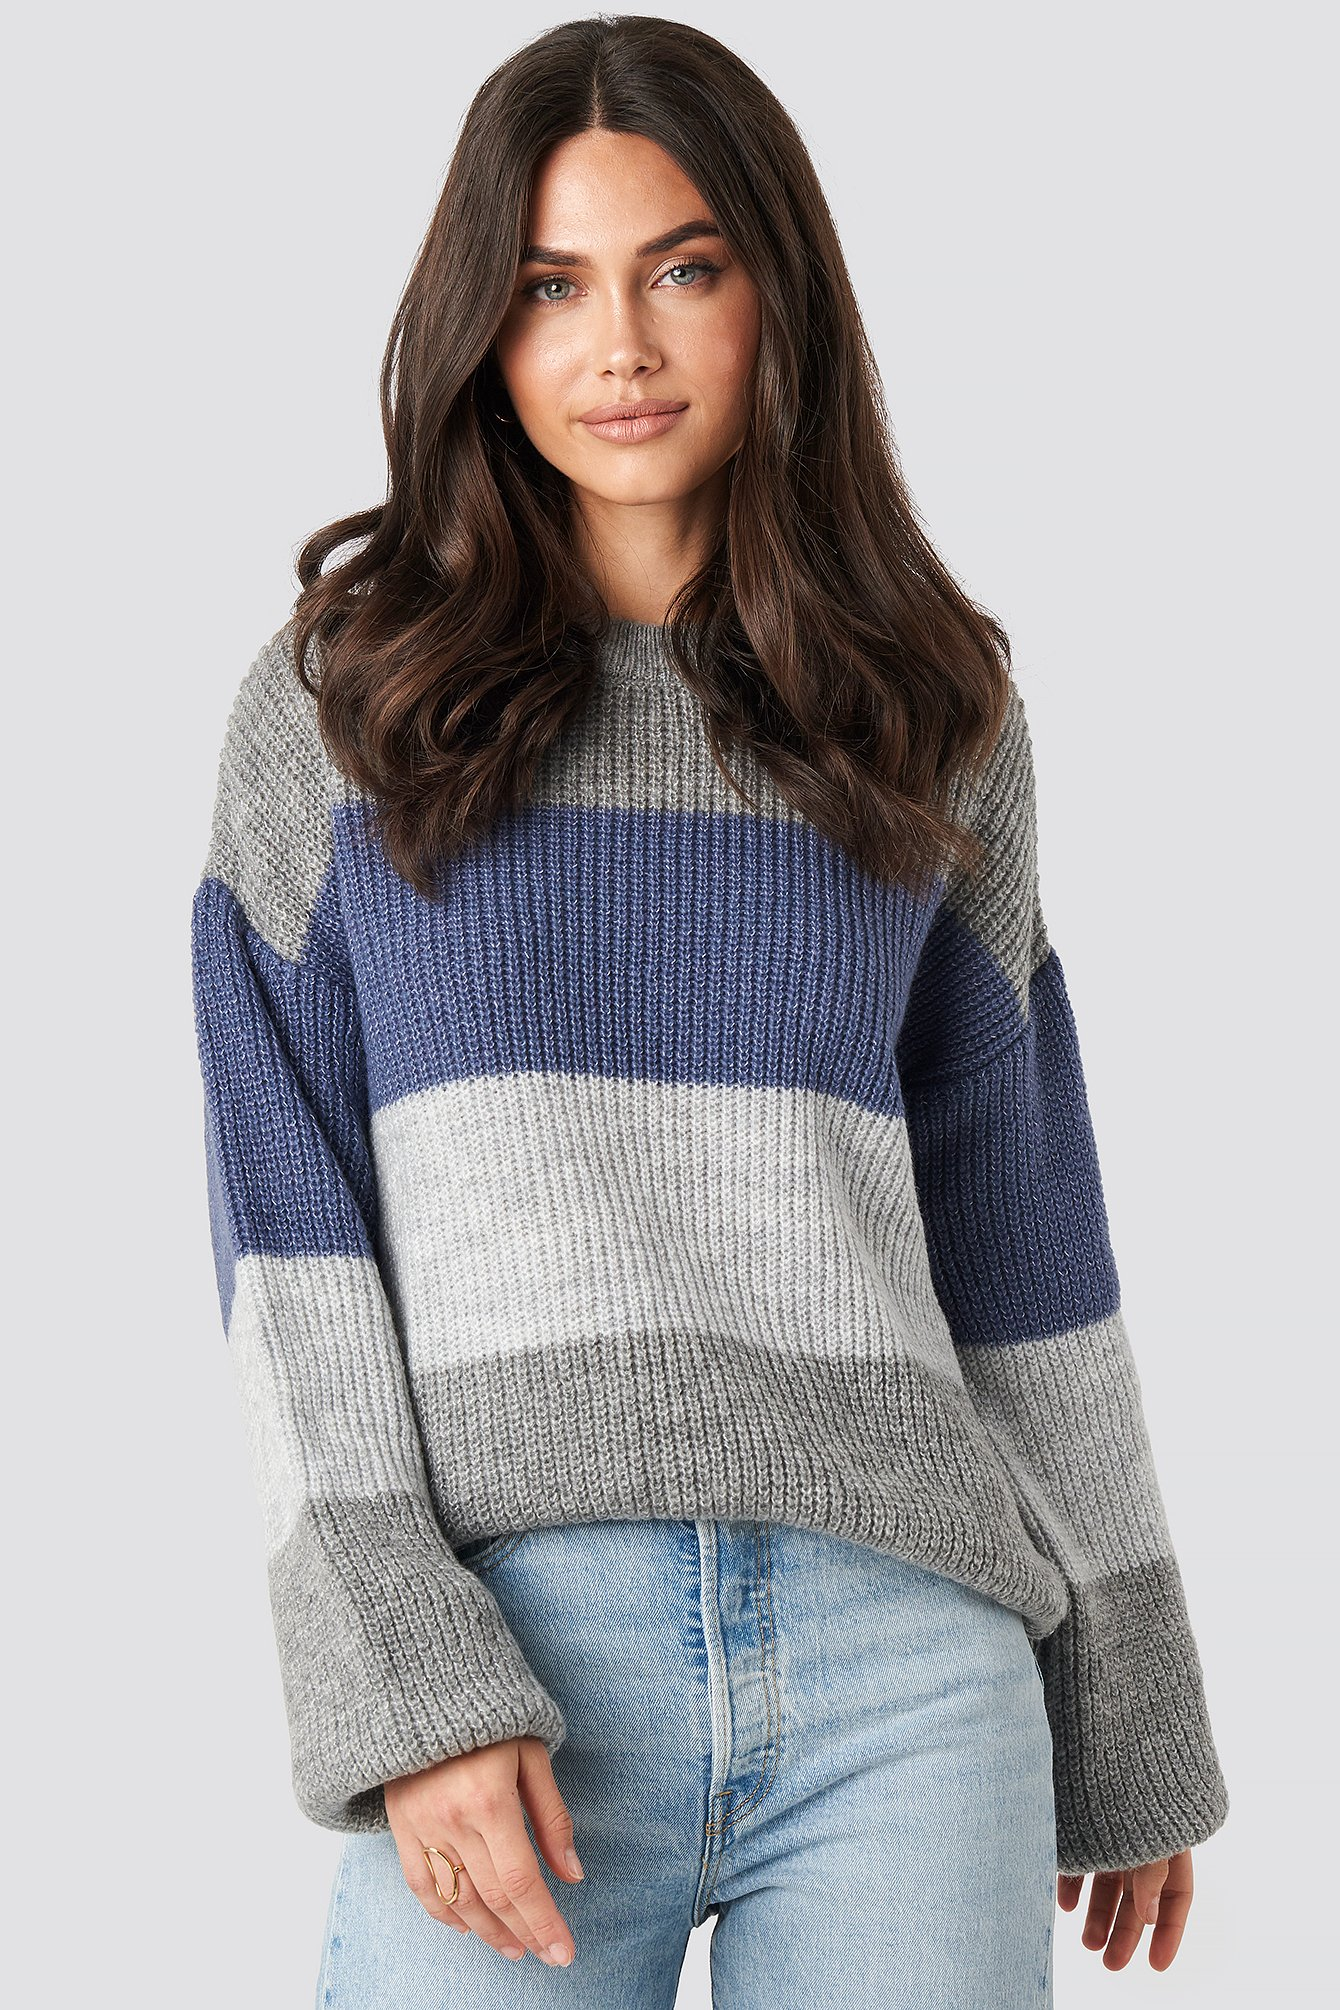 NA-KD Color Striped Balloon Sleeve Knitted Sweater - Grey,Blue,Multicolor